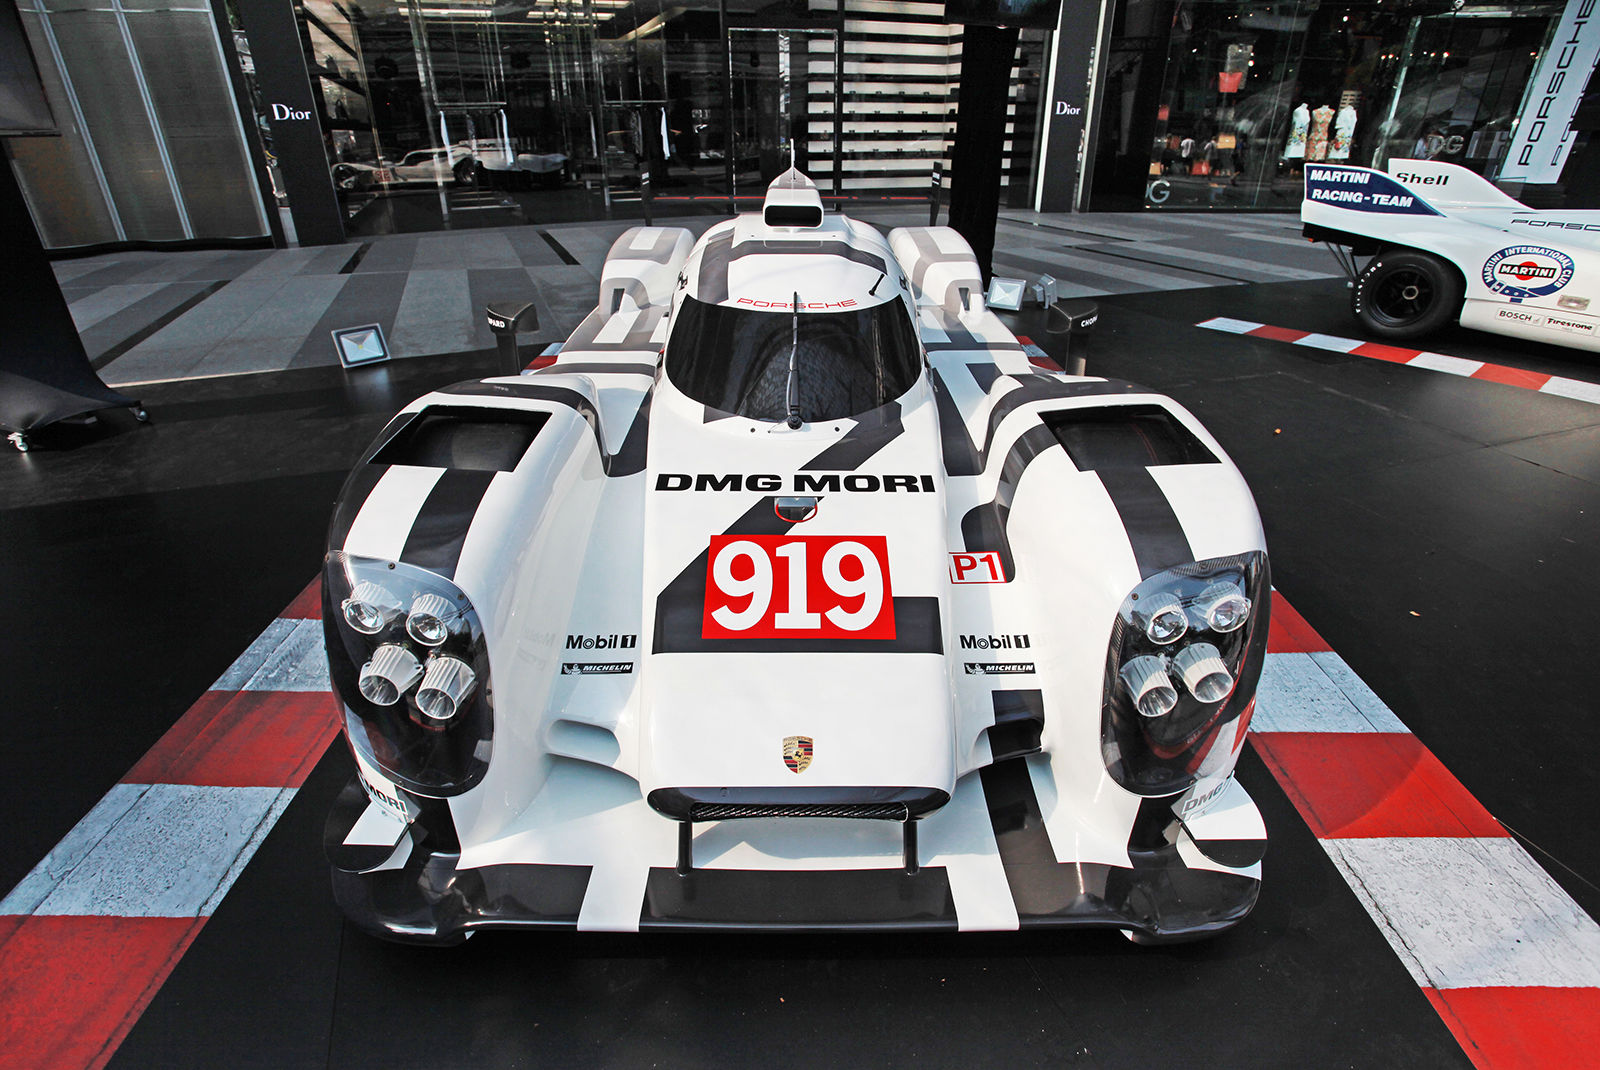 Official Porsche 919 Hybrid Replica Being Sold at Le Mans - GTspirit